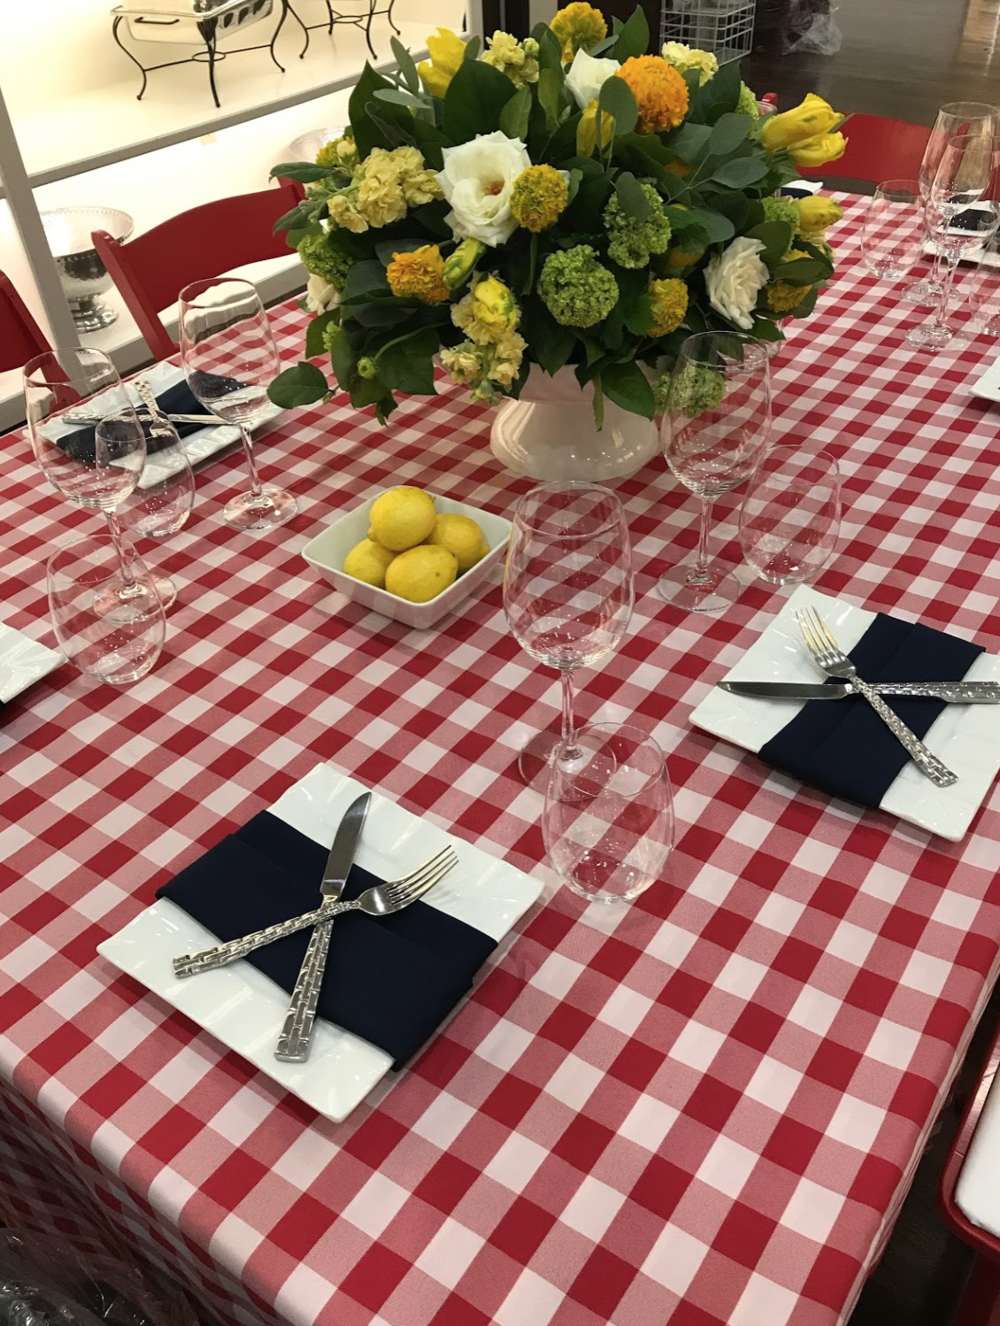 picnic style table with lemon arrangement from maxit flower design